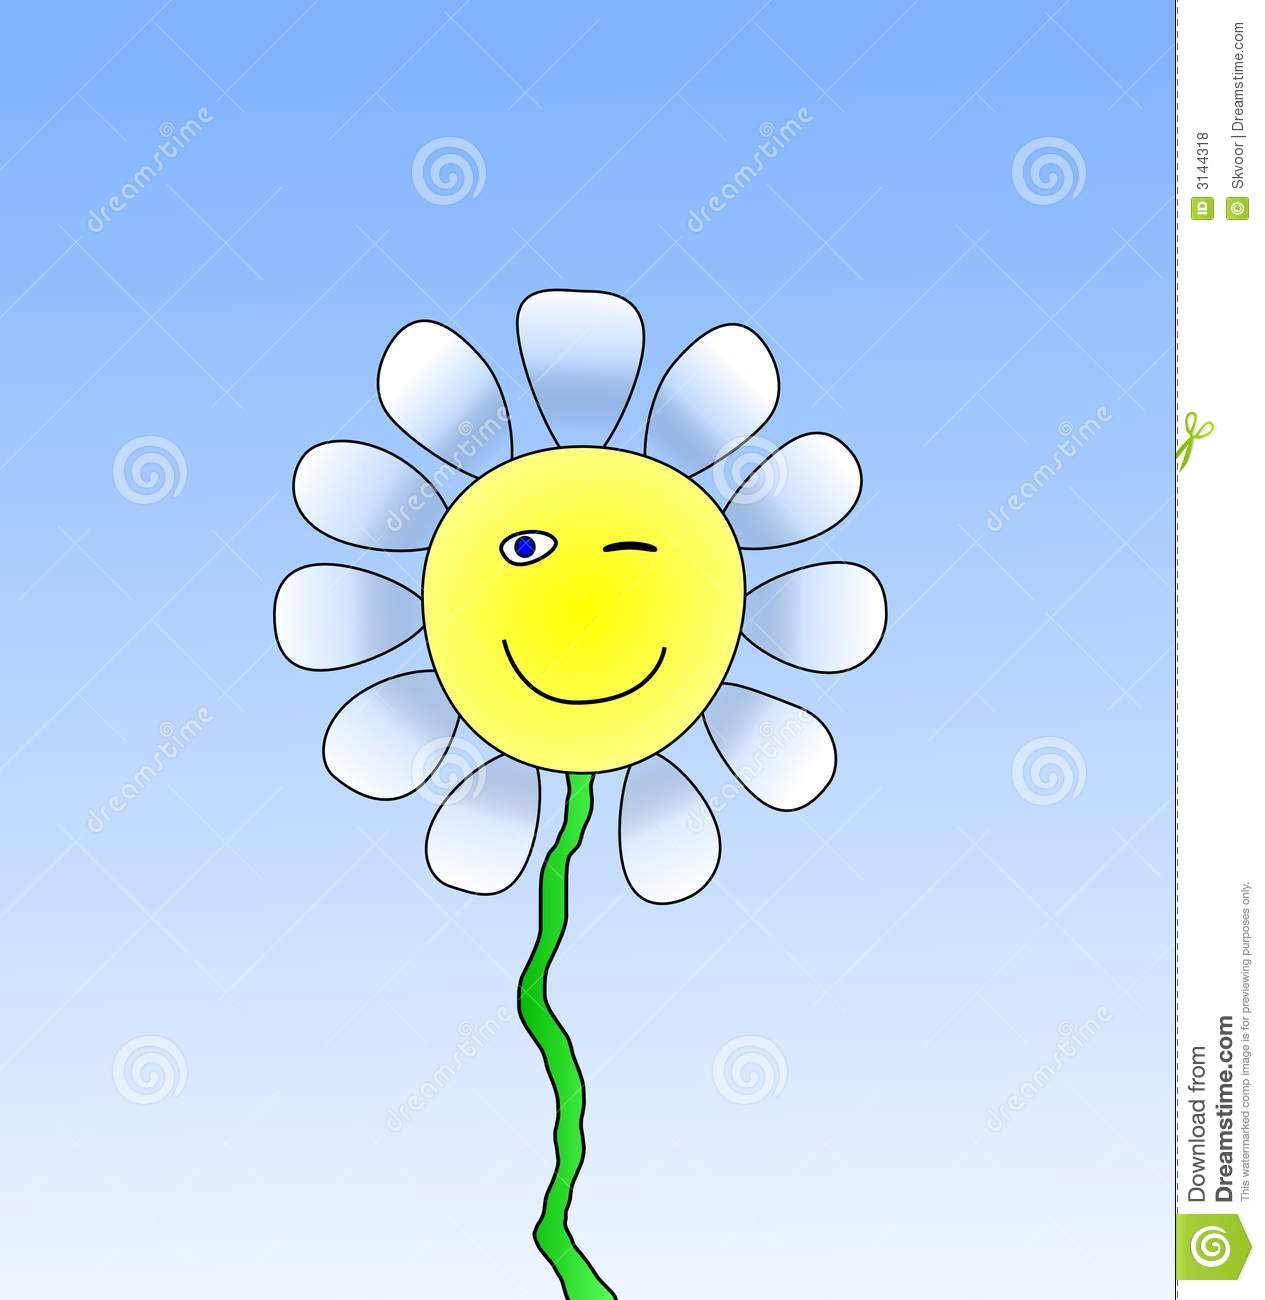 Happy Smiling Daisy Flower Stock Illustrations.